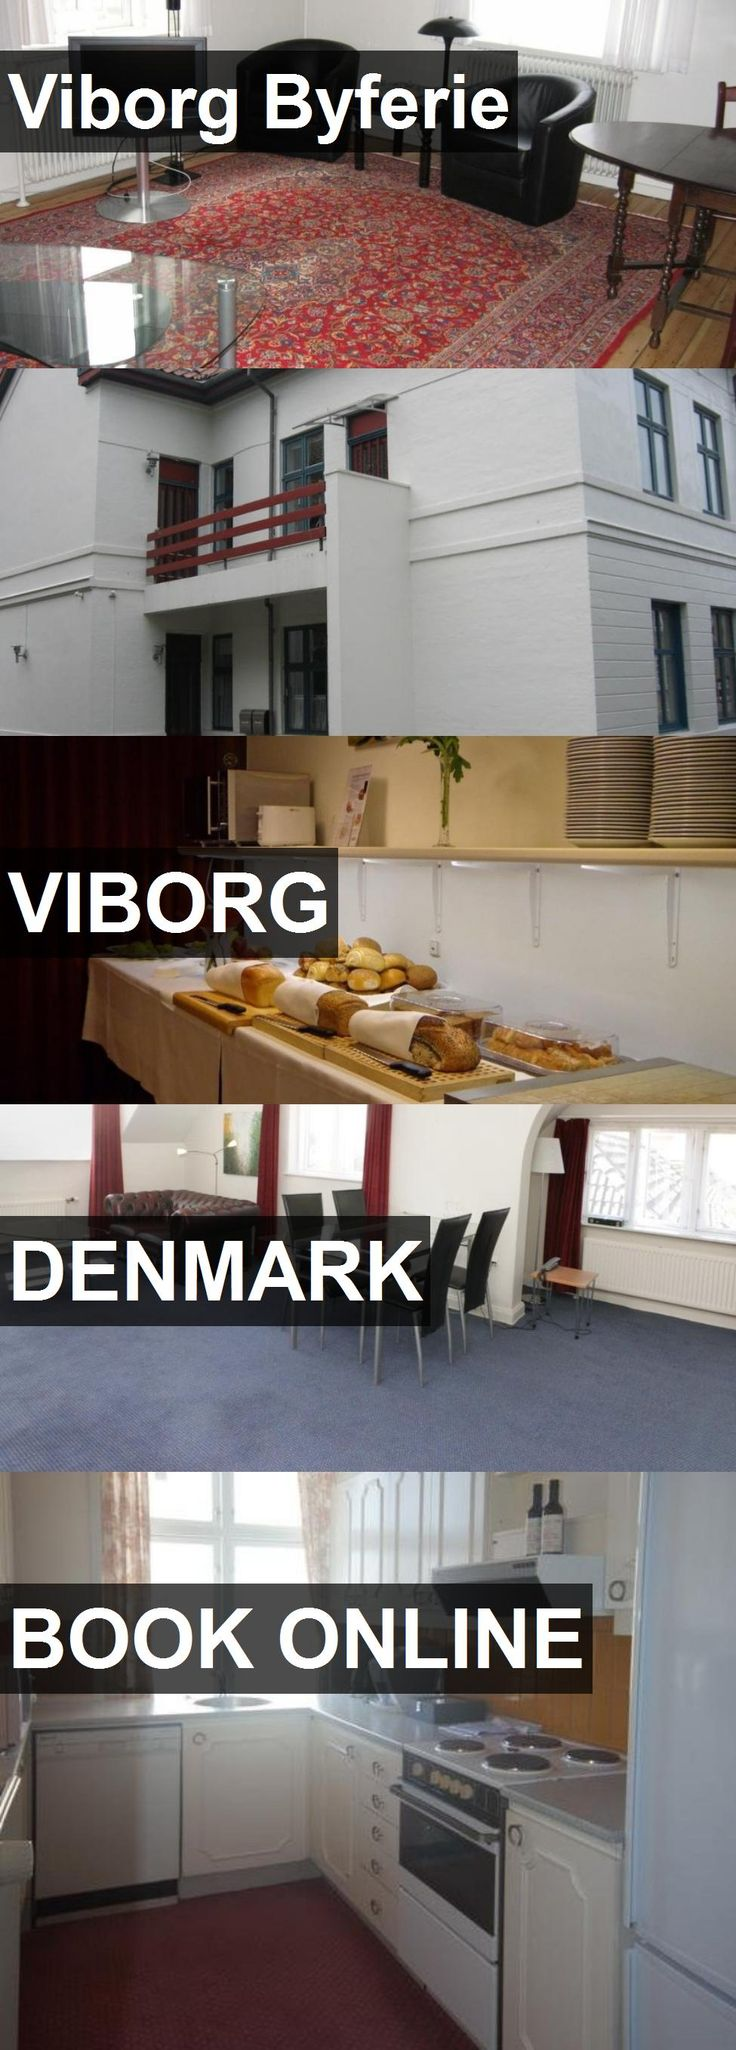 Hotel Viborg Byferie in Viborg, Denmark. For more information, photos, reviews and best prices please follow the link. #Denmark #Viborg #travel #vacation #hotel